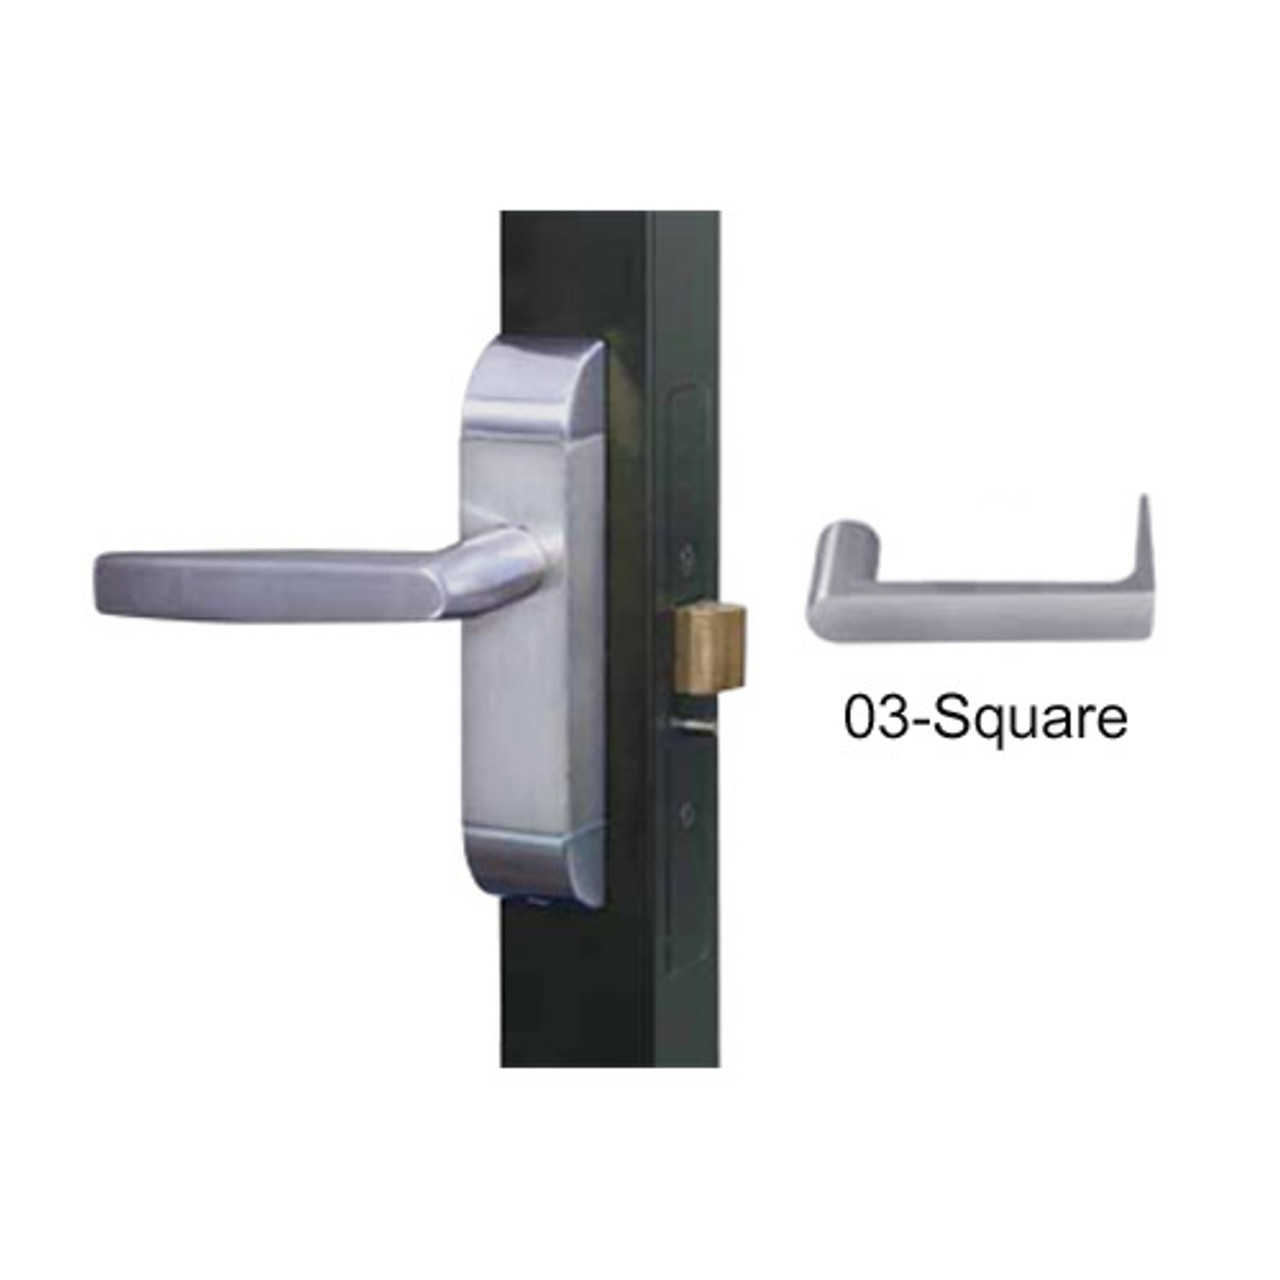 4600-03-522-US32D Adams Rite Heavy Duty Square Deadlatch Handles in Satin Stainless Finish